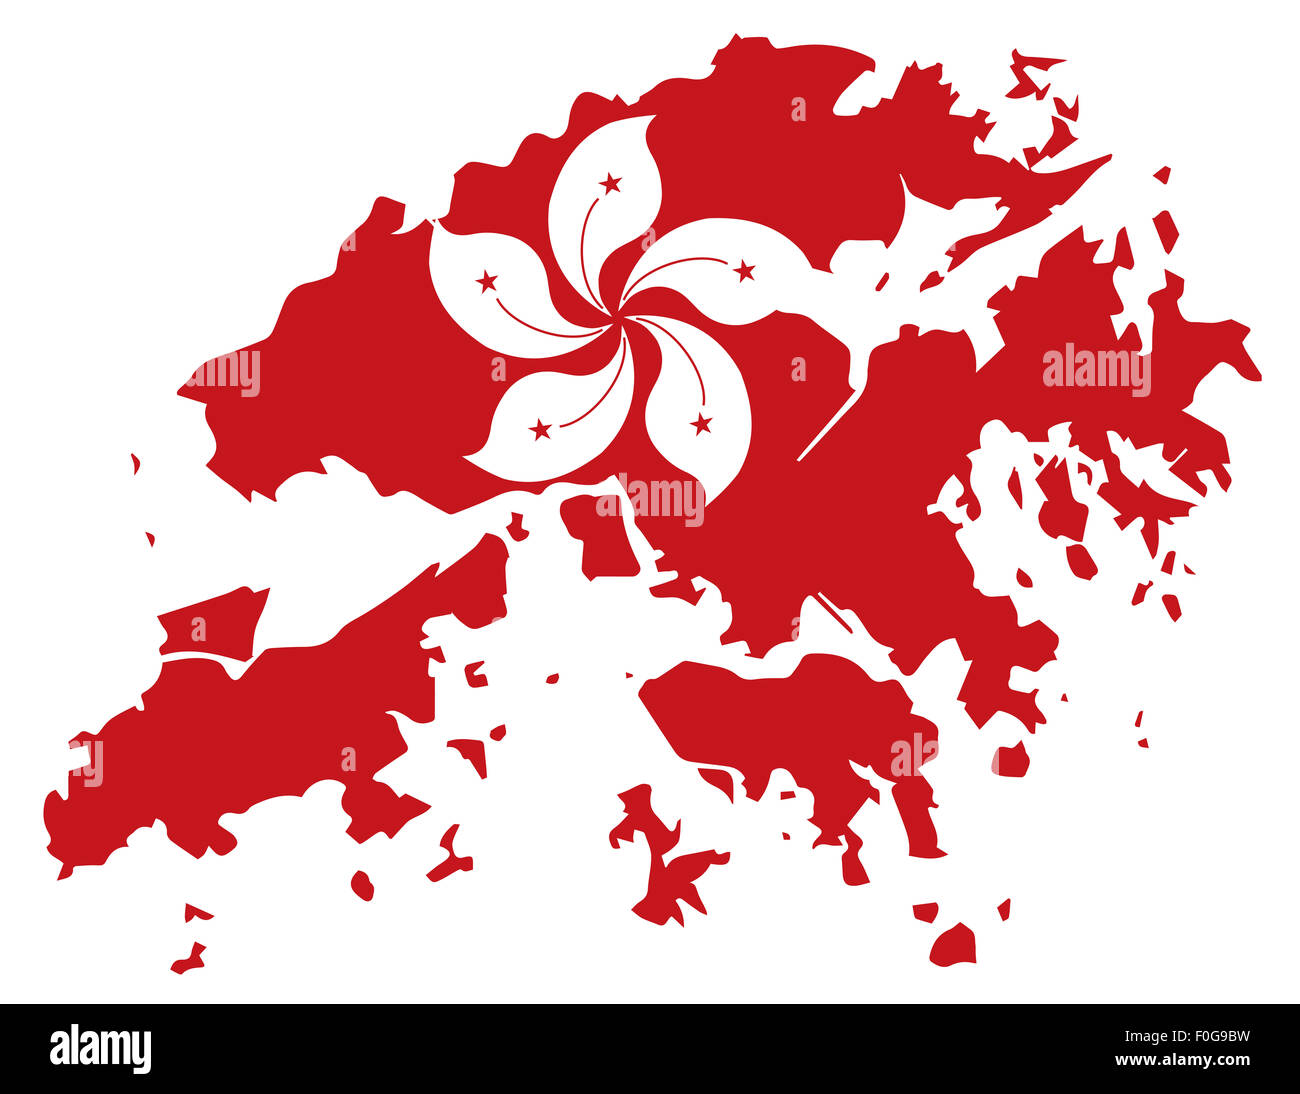 Hong Kong Flag in Red Map Outline Silhouette Illustration - Stock Image